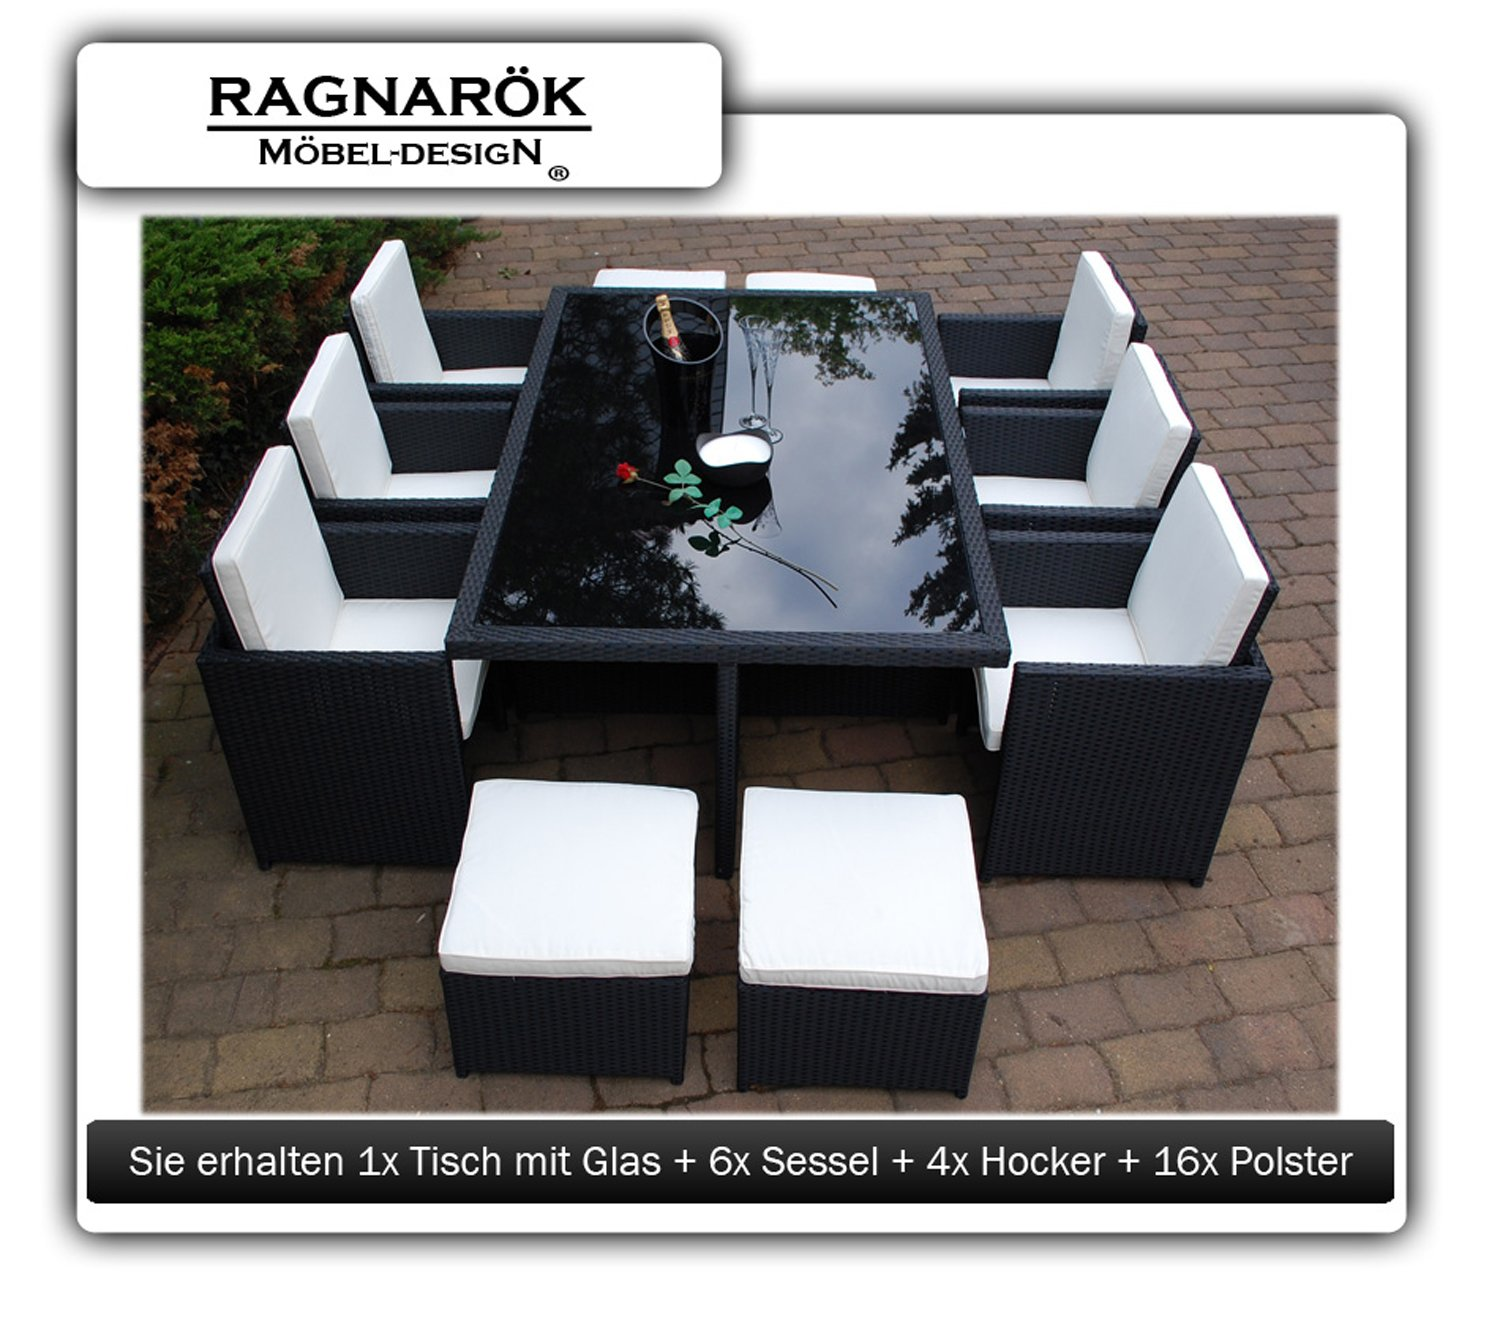 ragnar k gartenm bel my blog. Black Bedroom Furniture Sets. Home Design Ideas